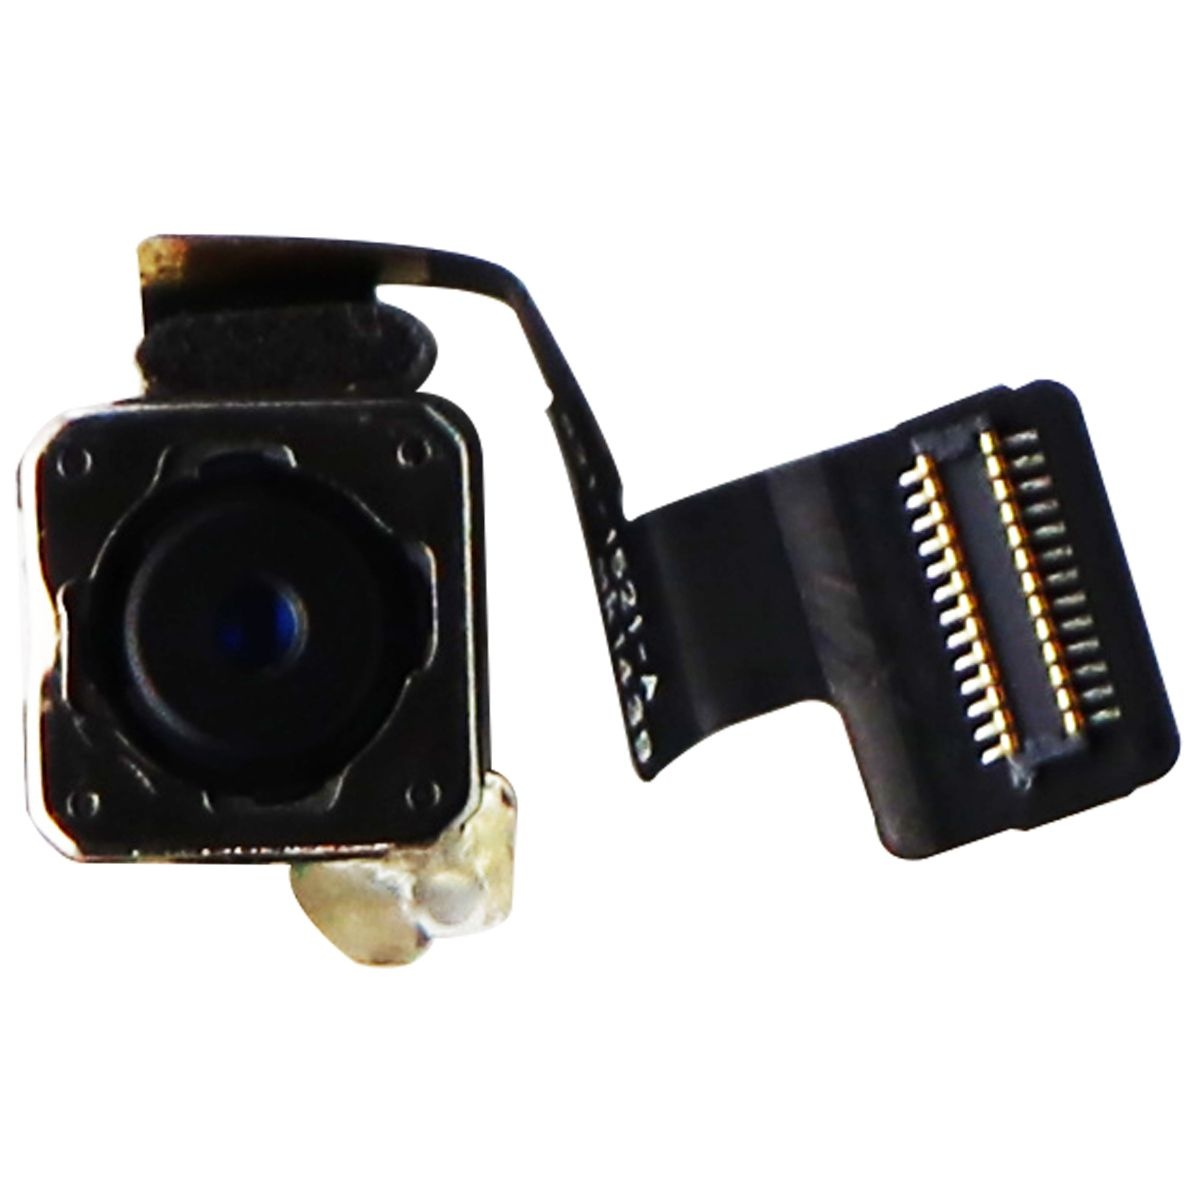 REPAIR PART - Front Camera for iPad Mini 3 - Take Off from A1600